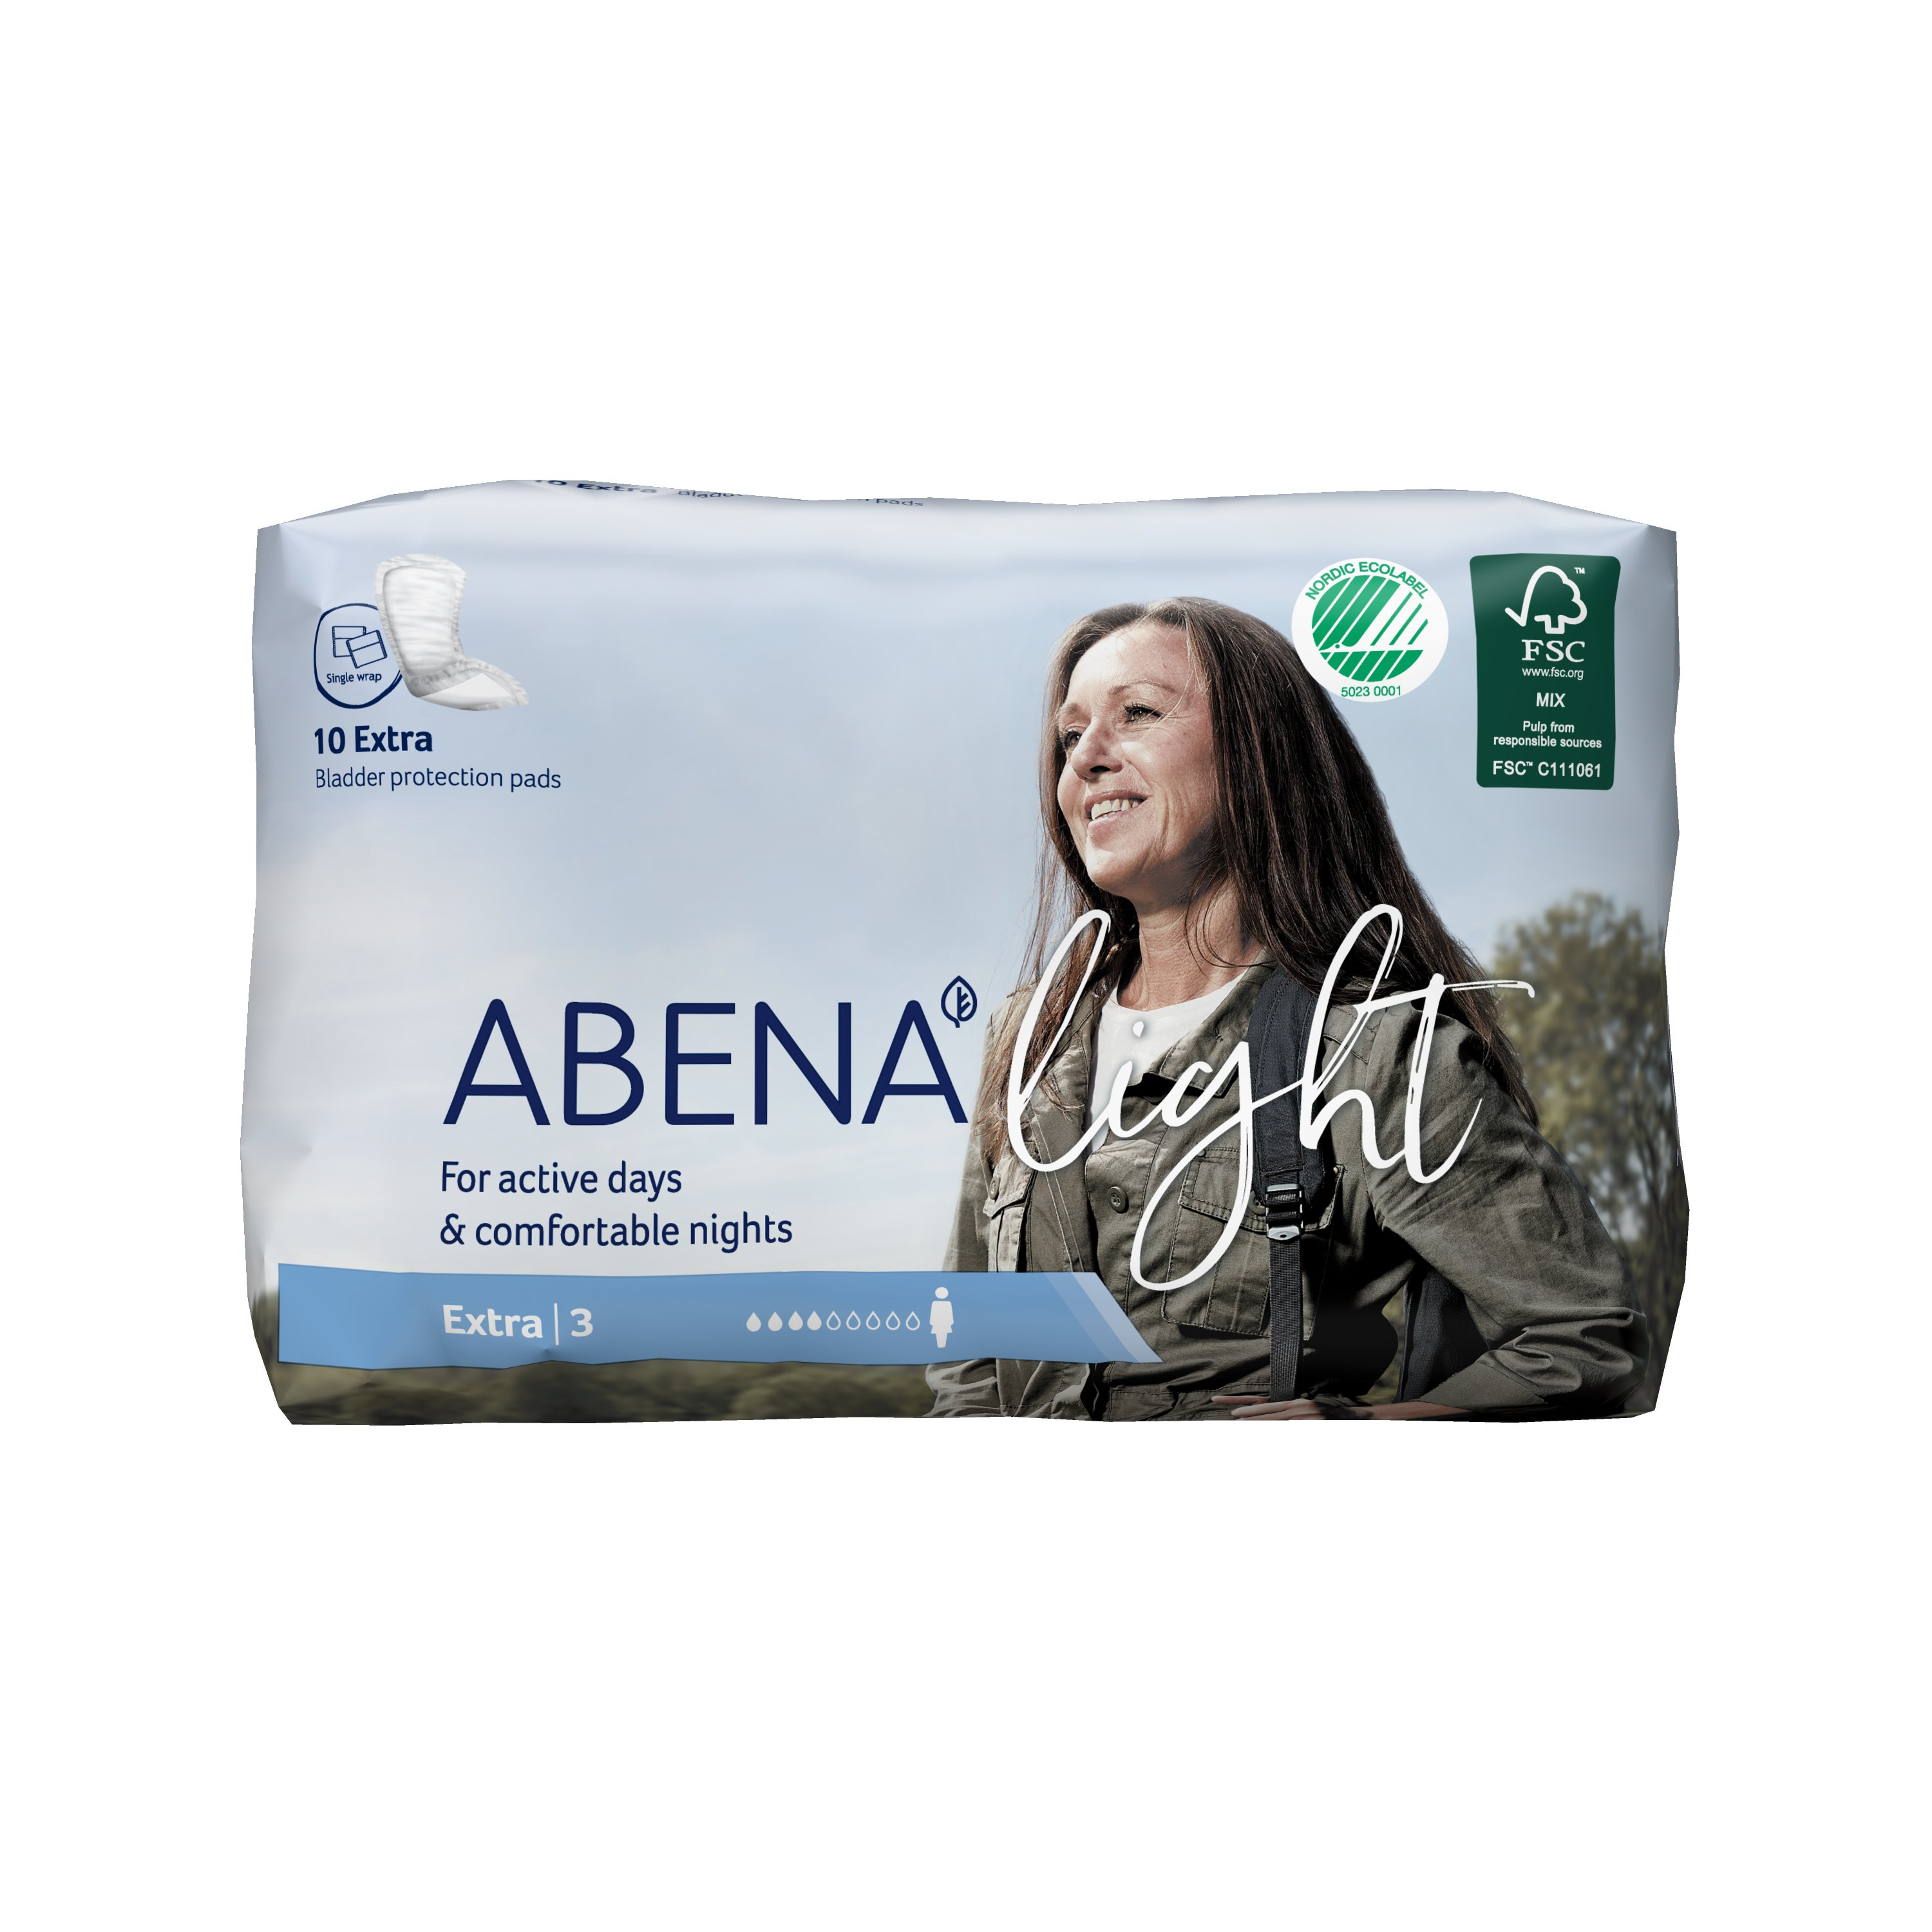 Abena Light Extra Disposable Unisex Adult Bladder Control Pad, Moderate Absorbency, 1000017158, One Size Fits Most -  Case of 200 Pads (20 Bags)